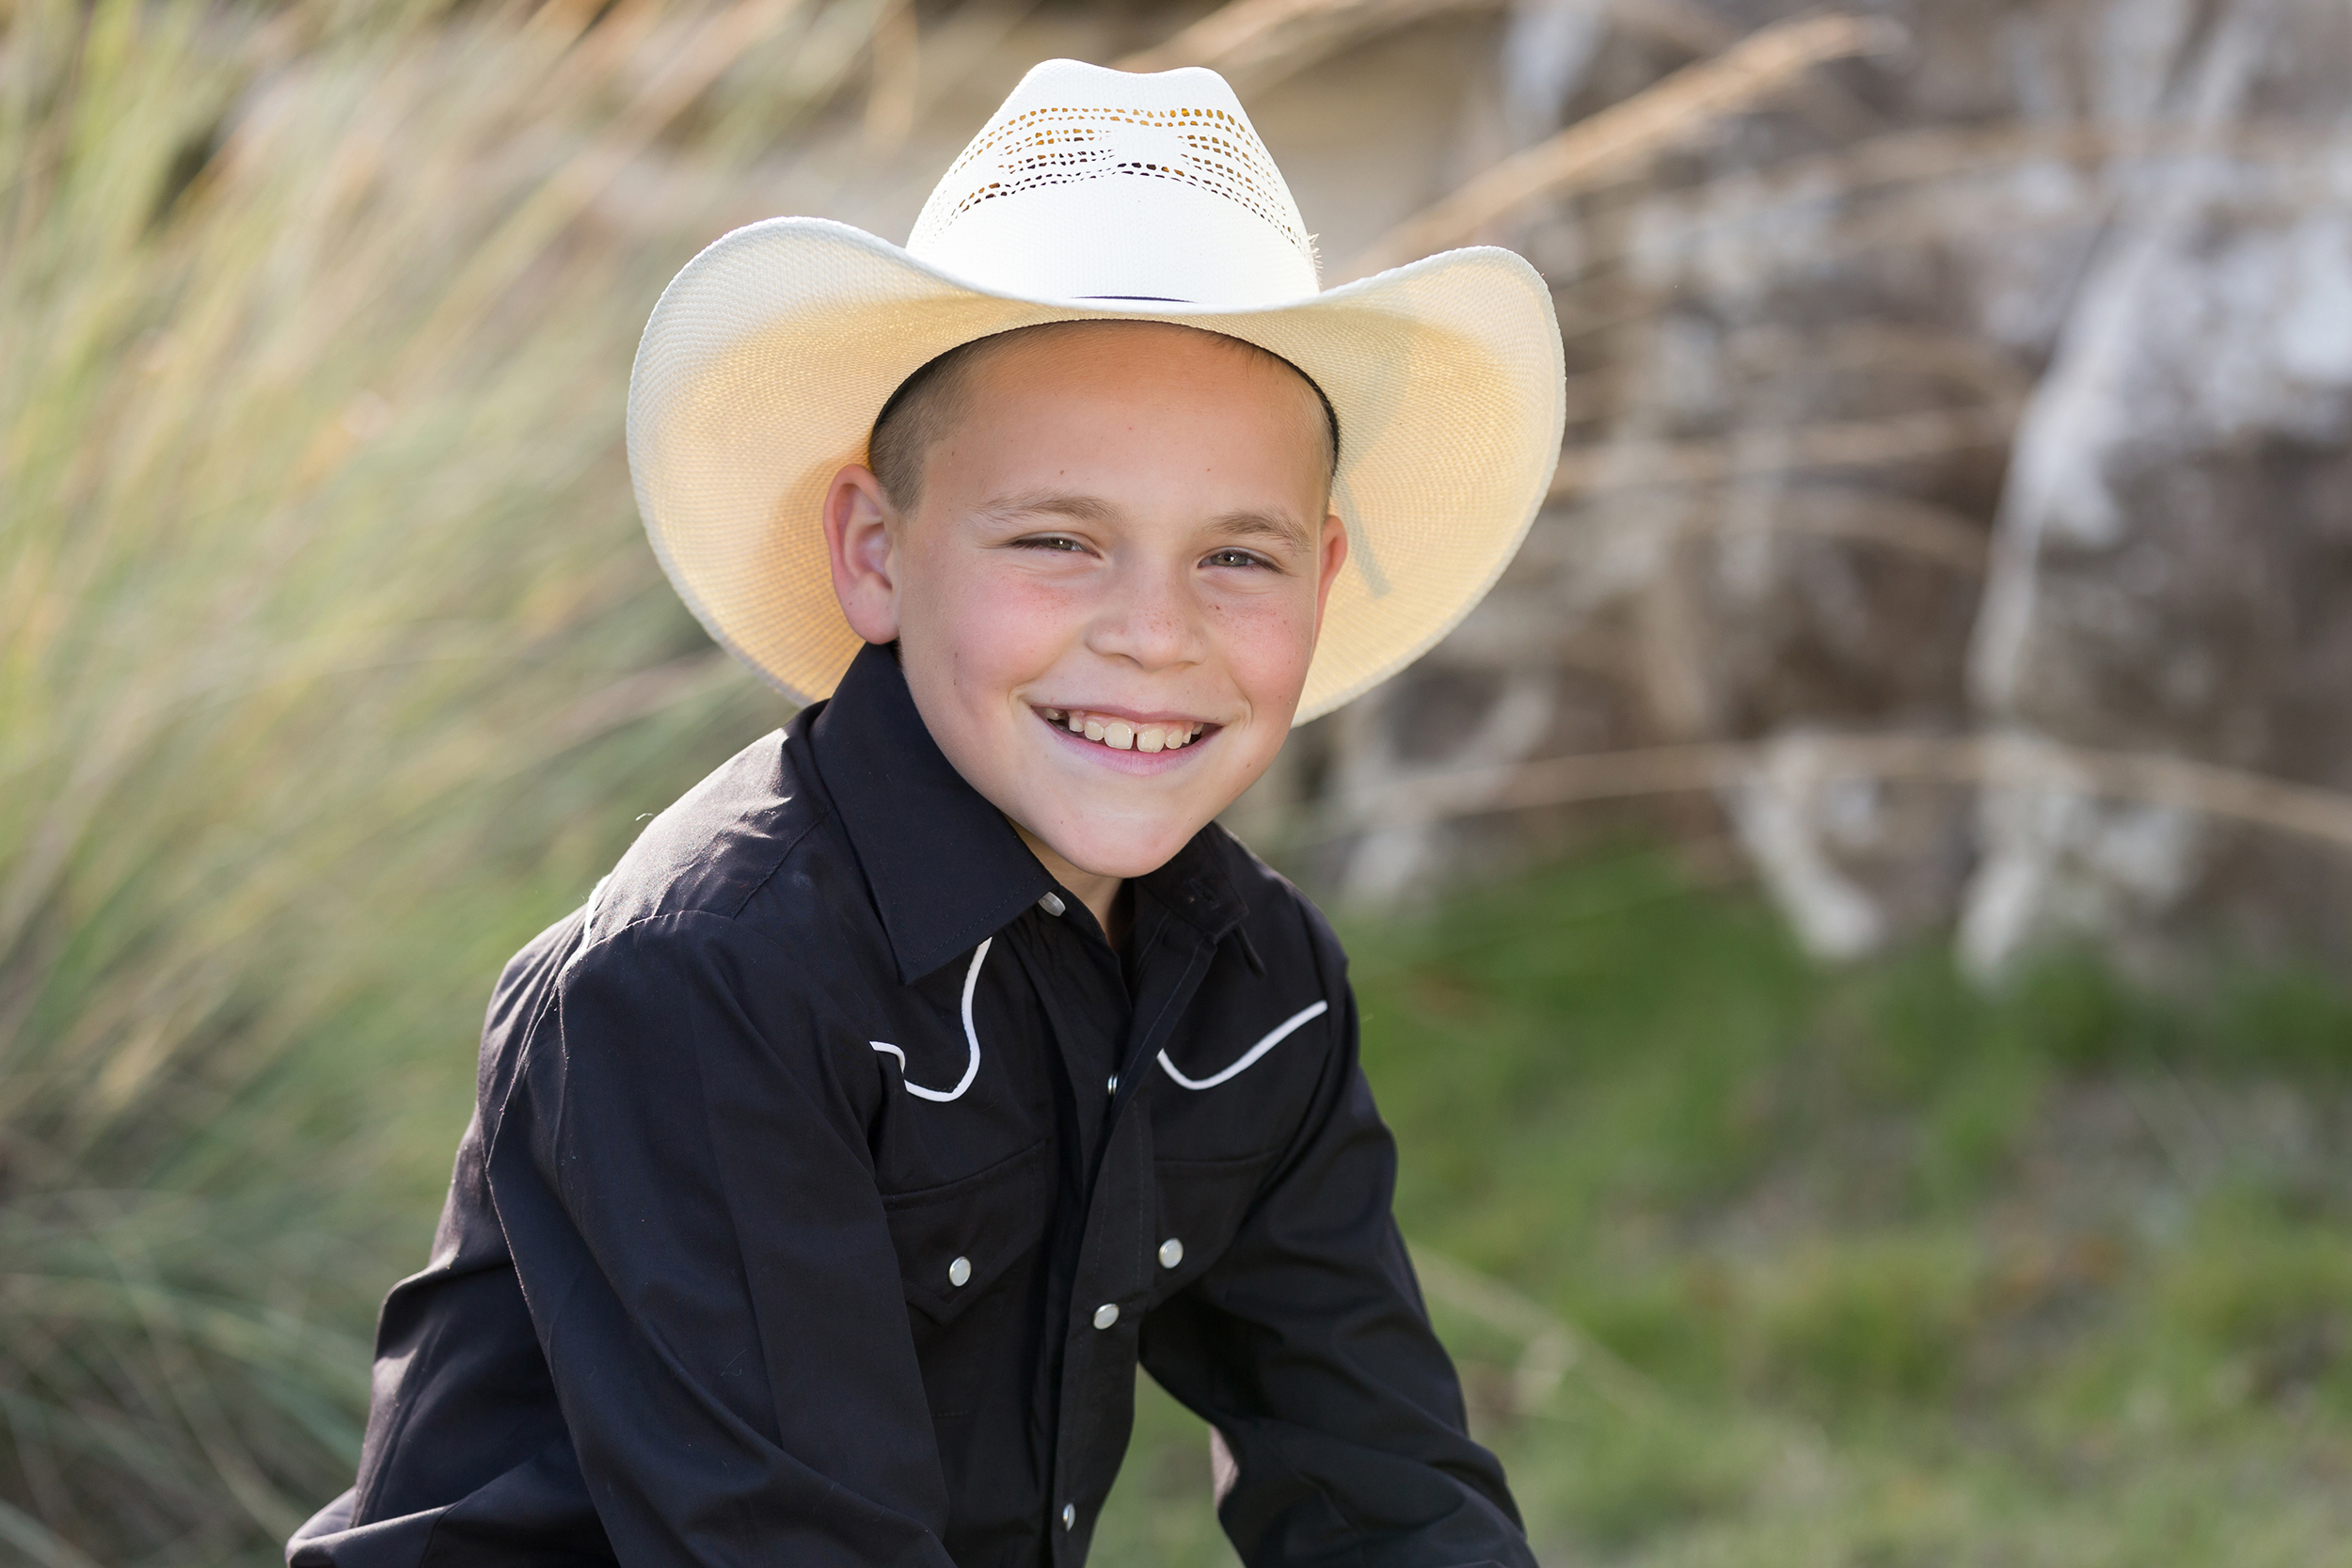 Boy-western-hat-smiling.jpg